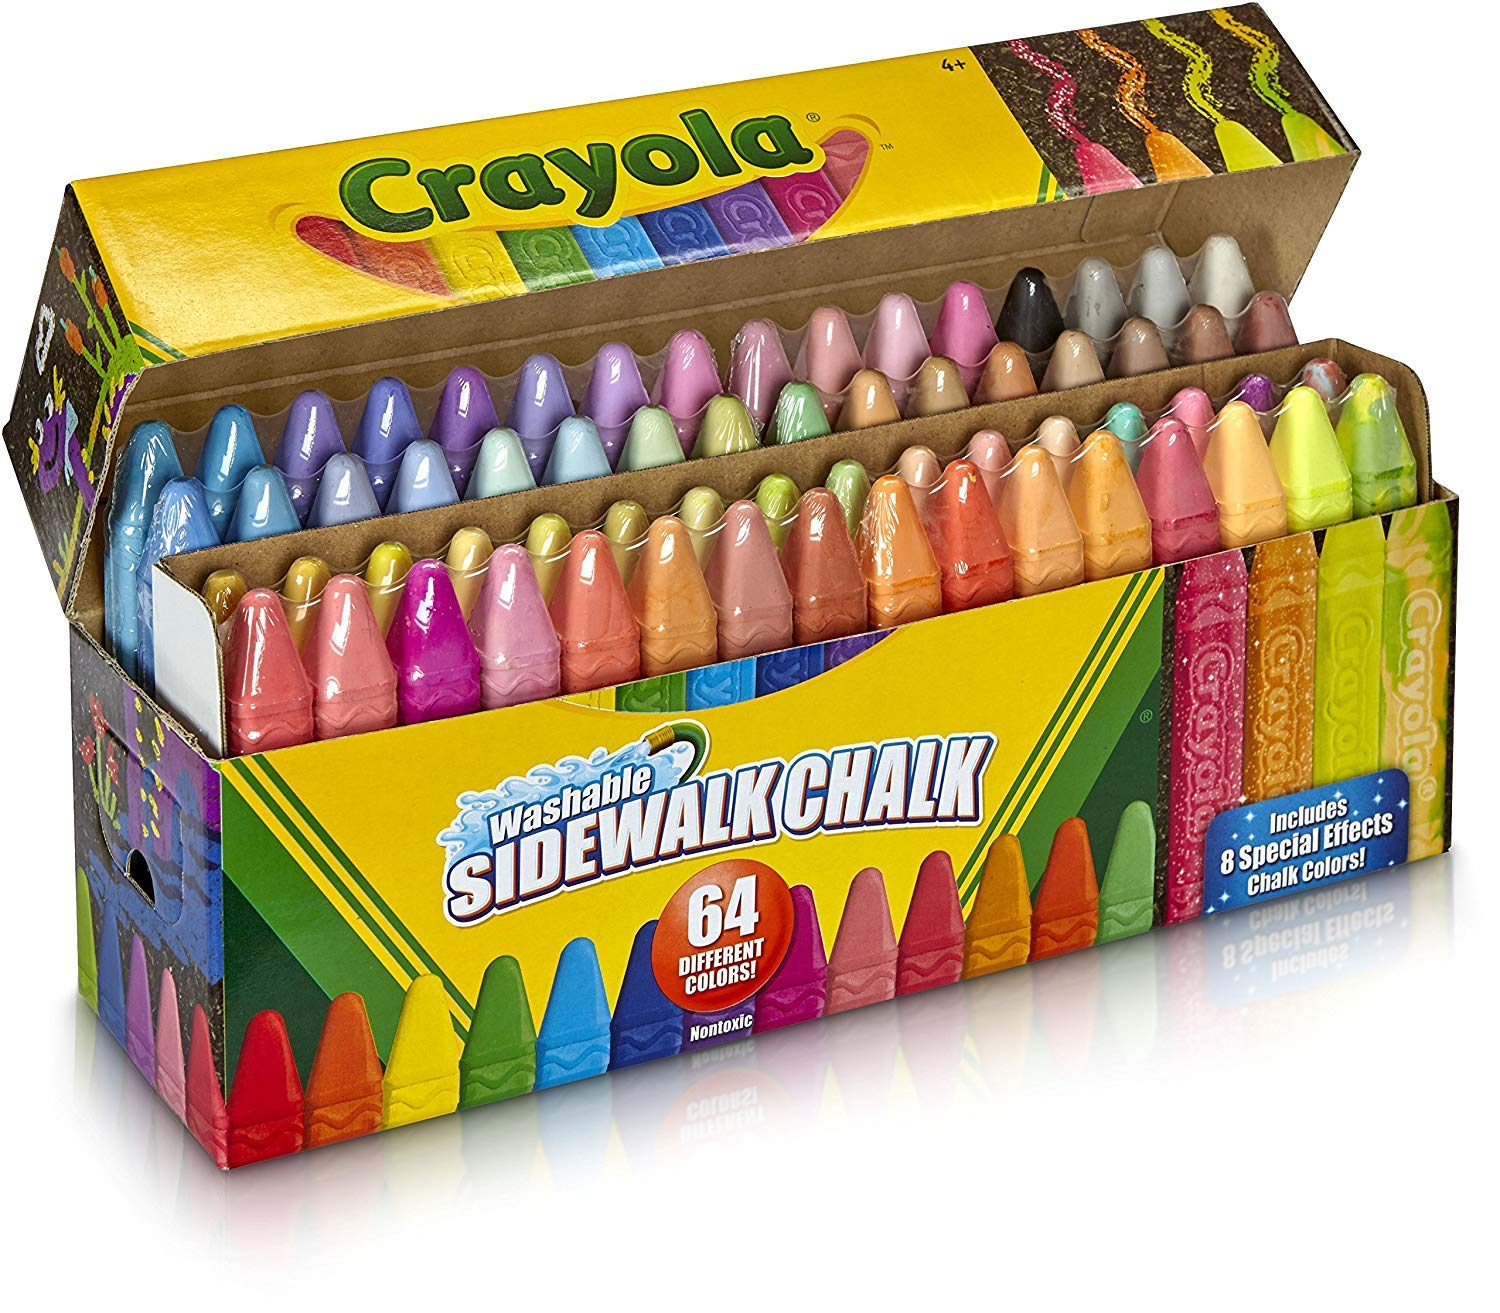 Crayola Sidewalk Chalk, Washable, Outdoor, Gifts for Kids 256 Chalks by Crayola